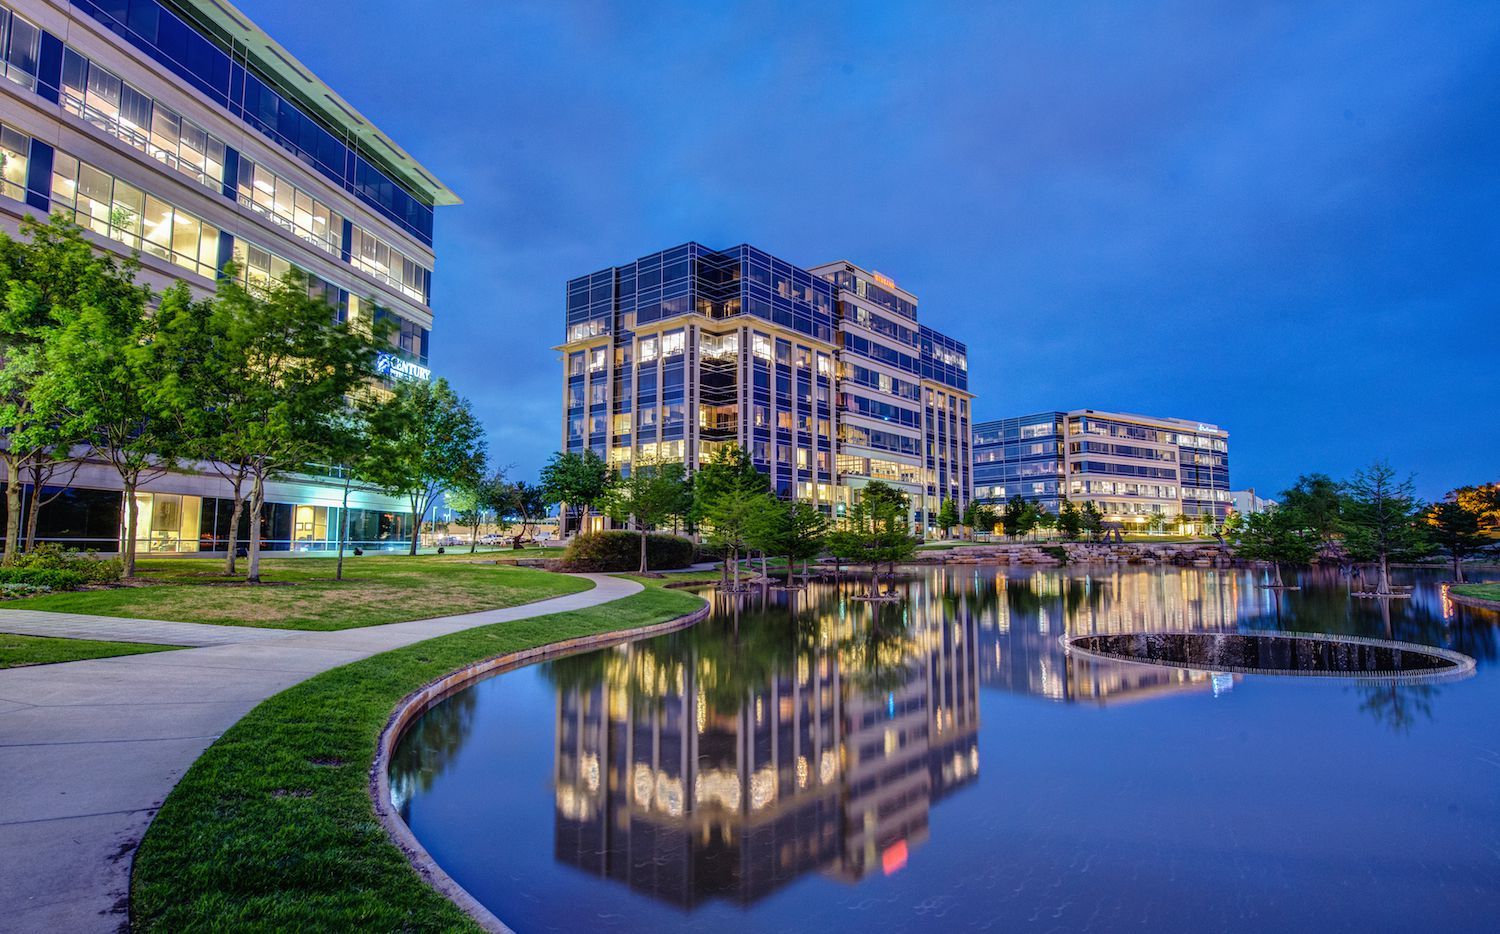 Developer Craig Hall said he is studying plans that could add another 3.5 million square feet or more at his Frisco office park. (Hall Park)